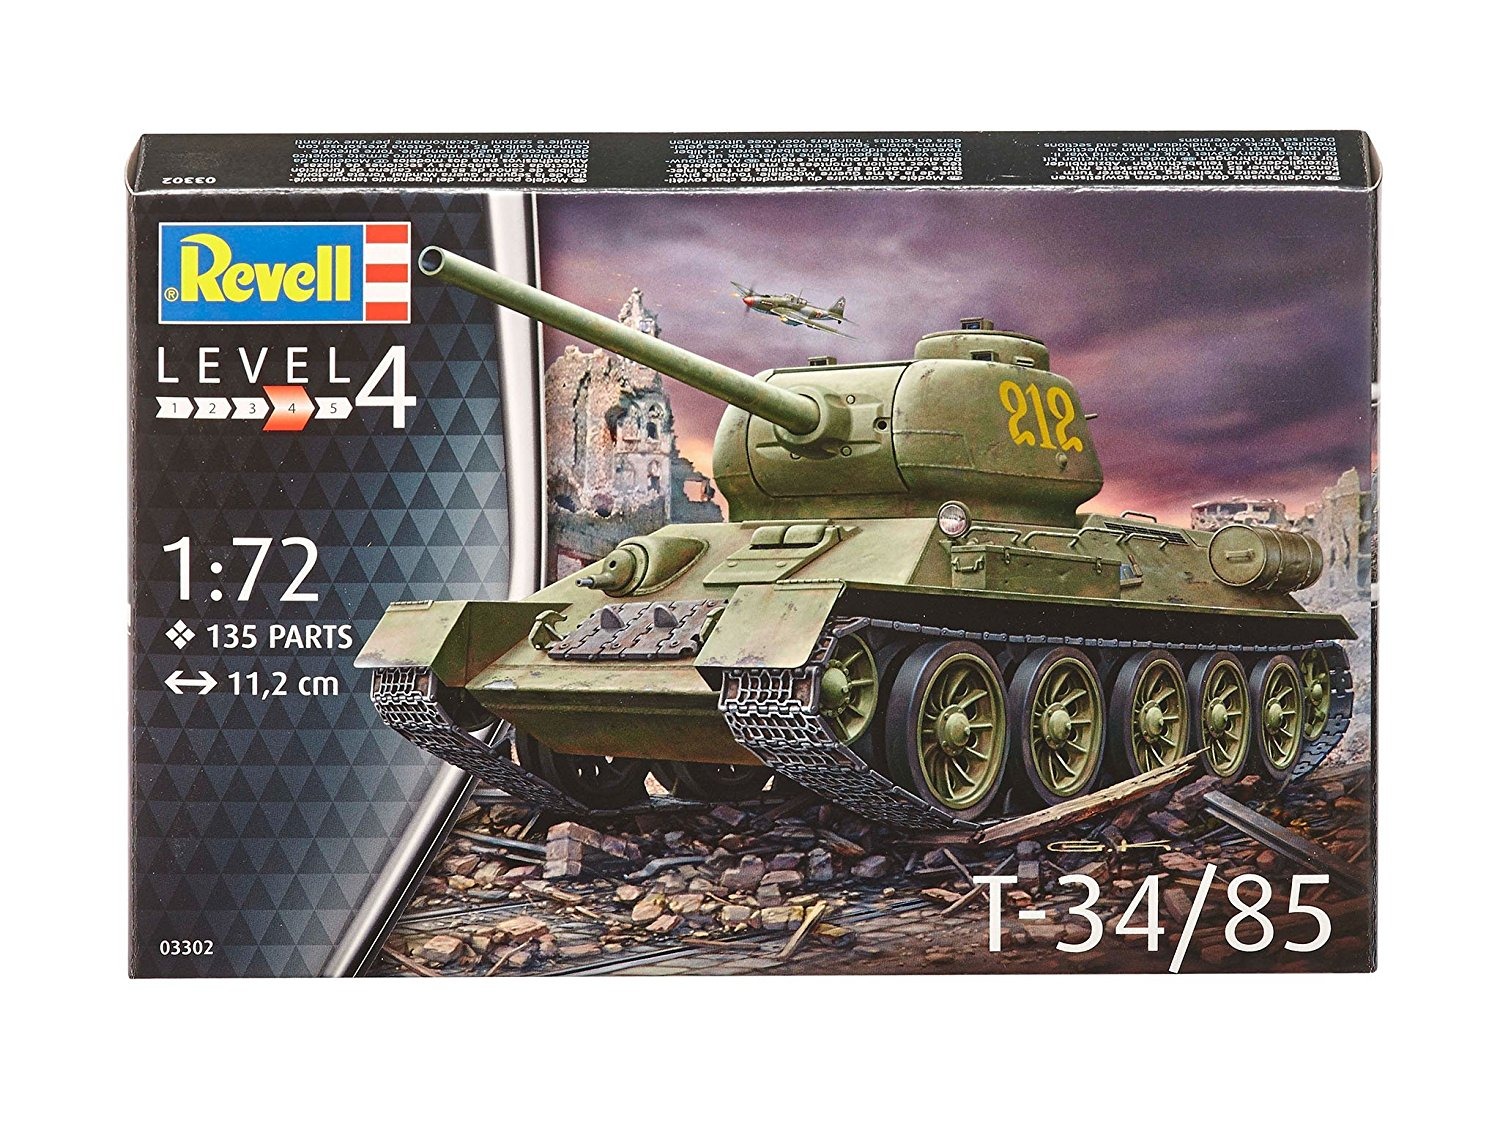 03302, T-34 85, 1:72 scale plastic model kit, Model is Scale 1:72 By Revell by